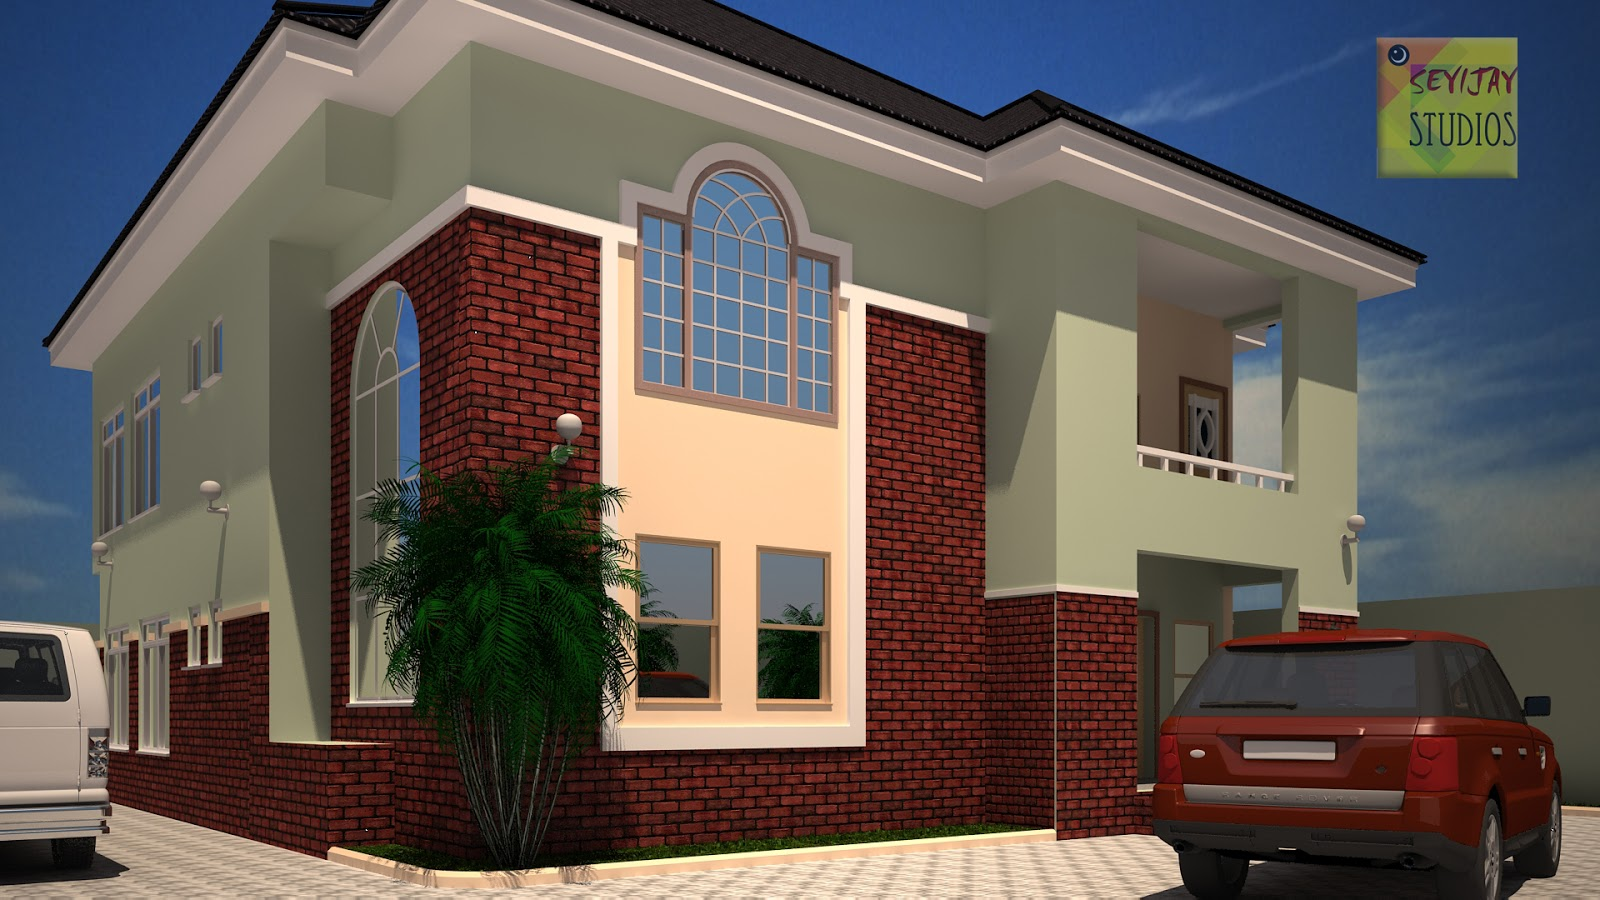 Latest Architectural Design latest architectural design - home design